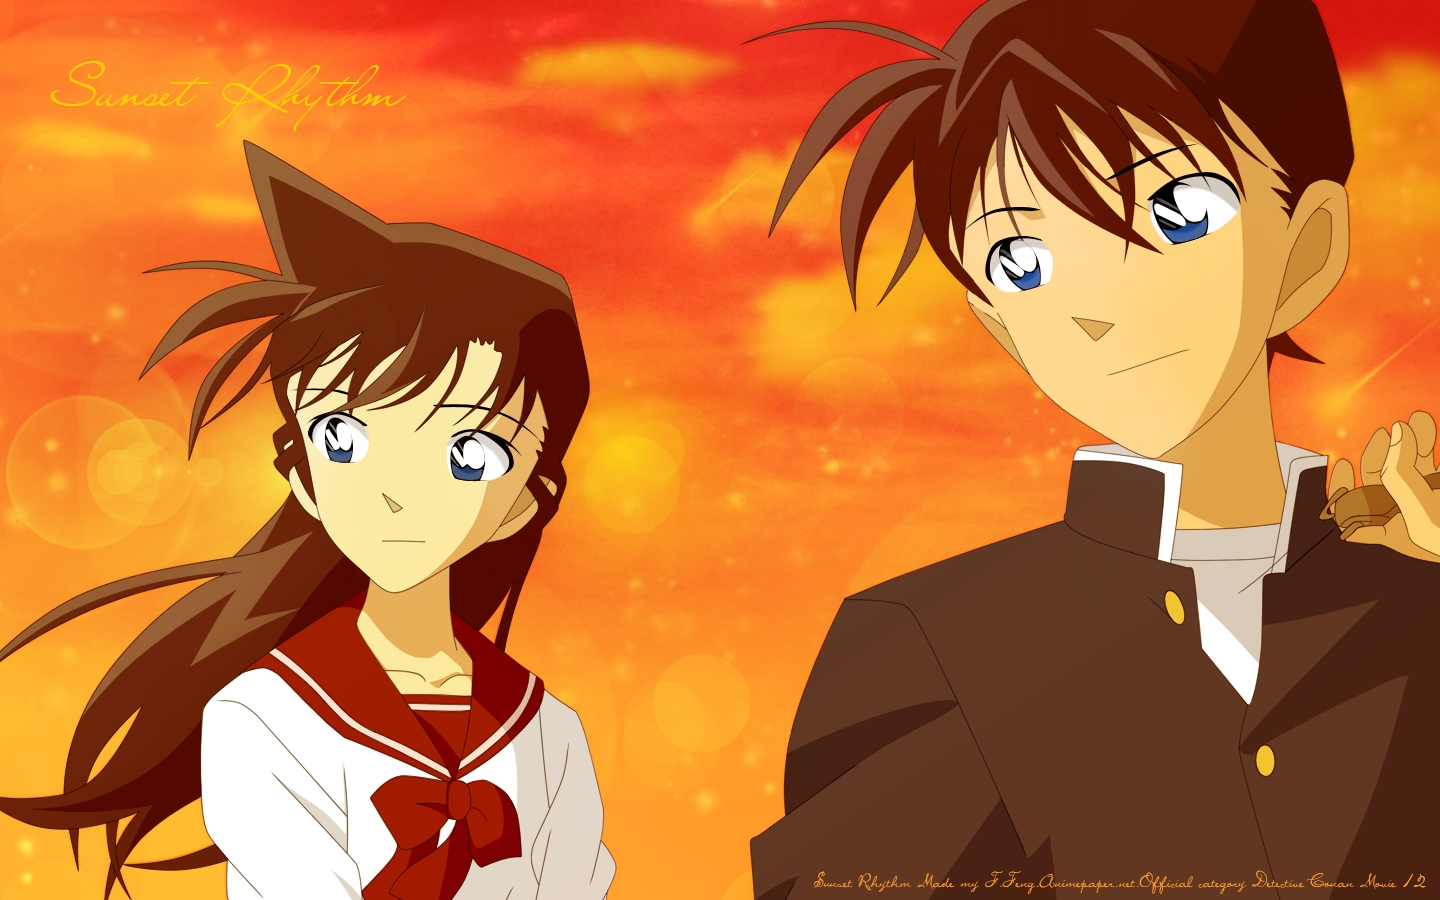 ran-mouri-and-shinichi-kudo